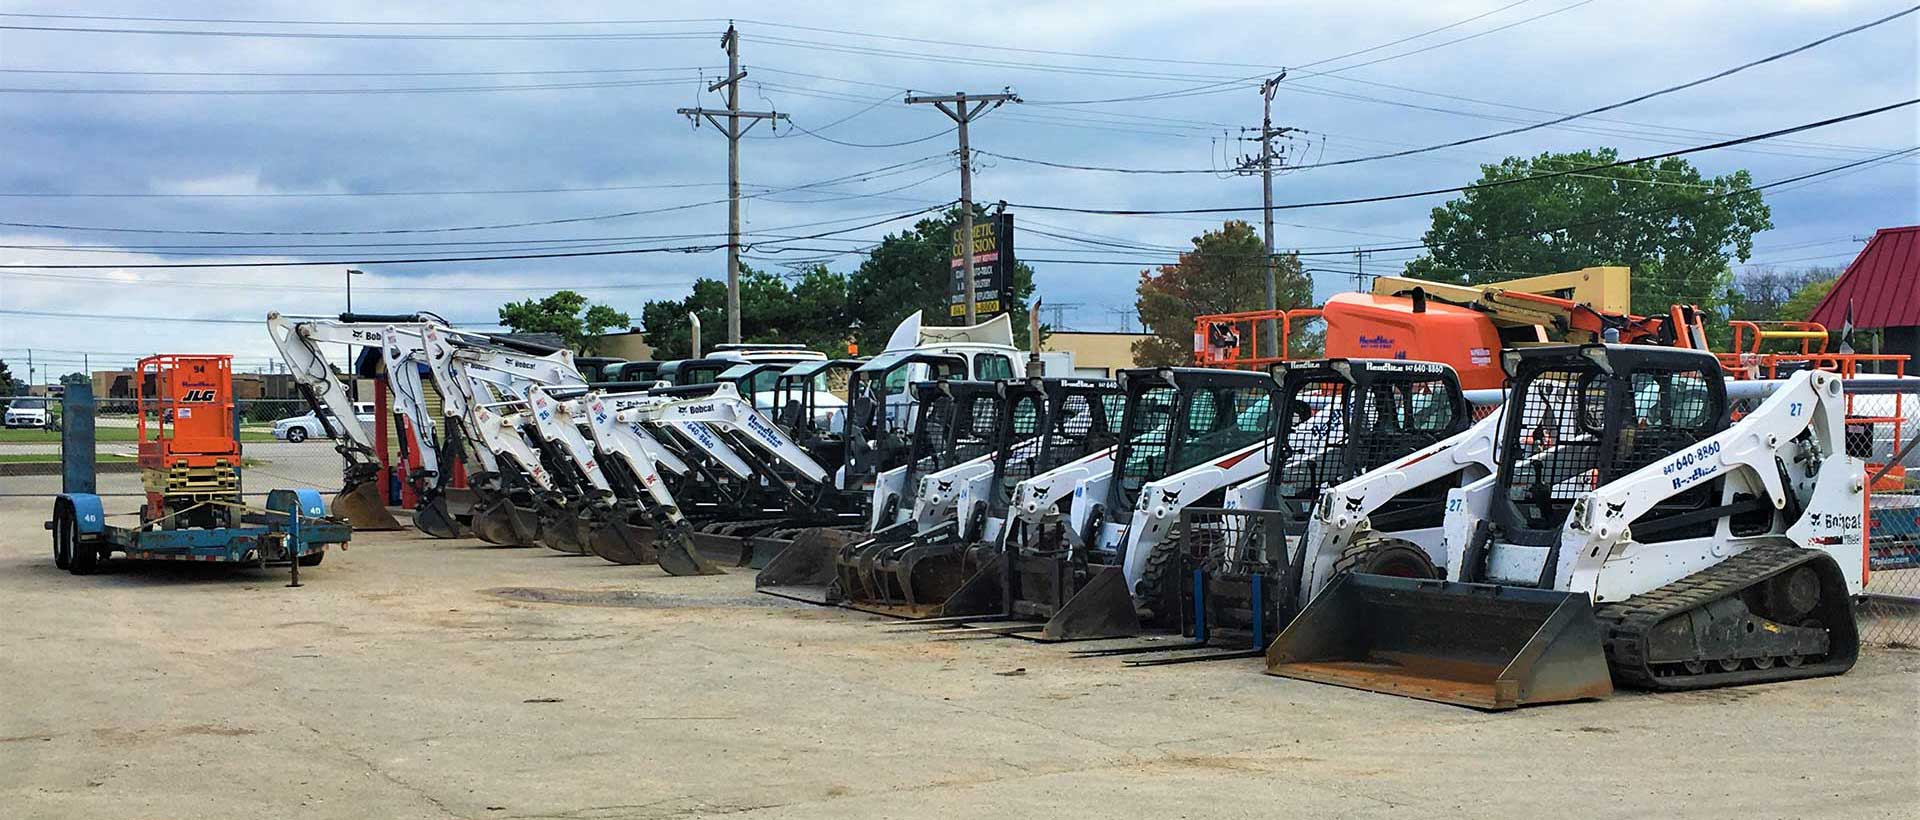 Equipment Rentals in Chicago